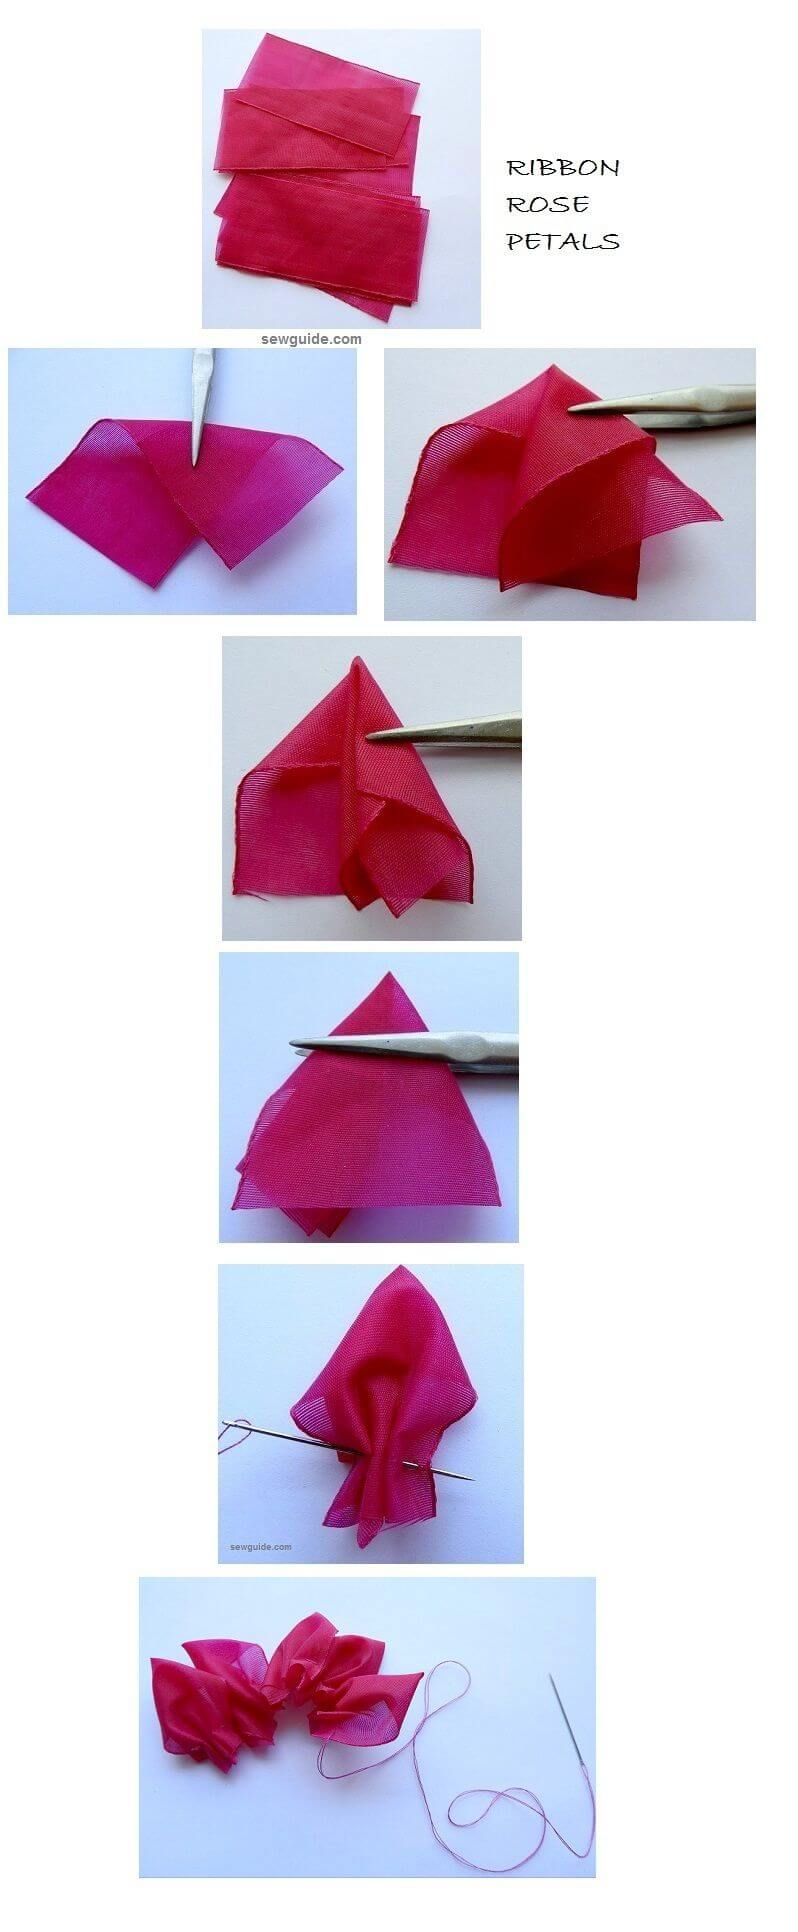 diy ribbon rose tutoriales